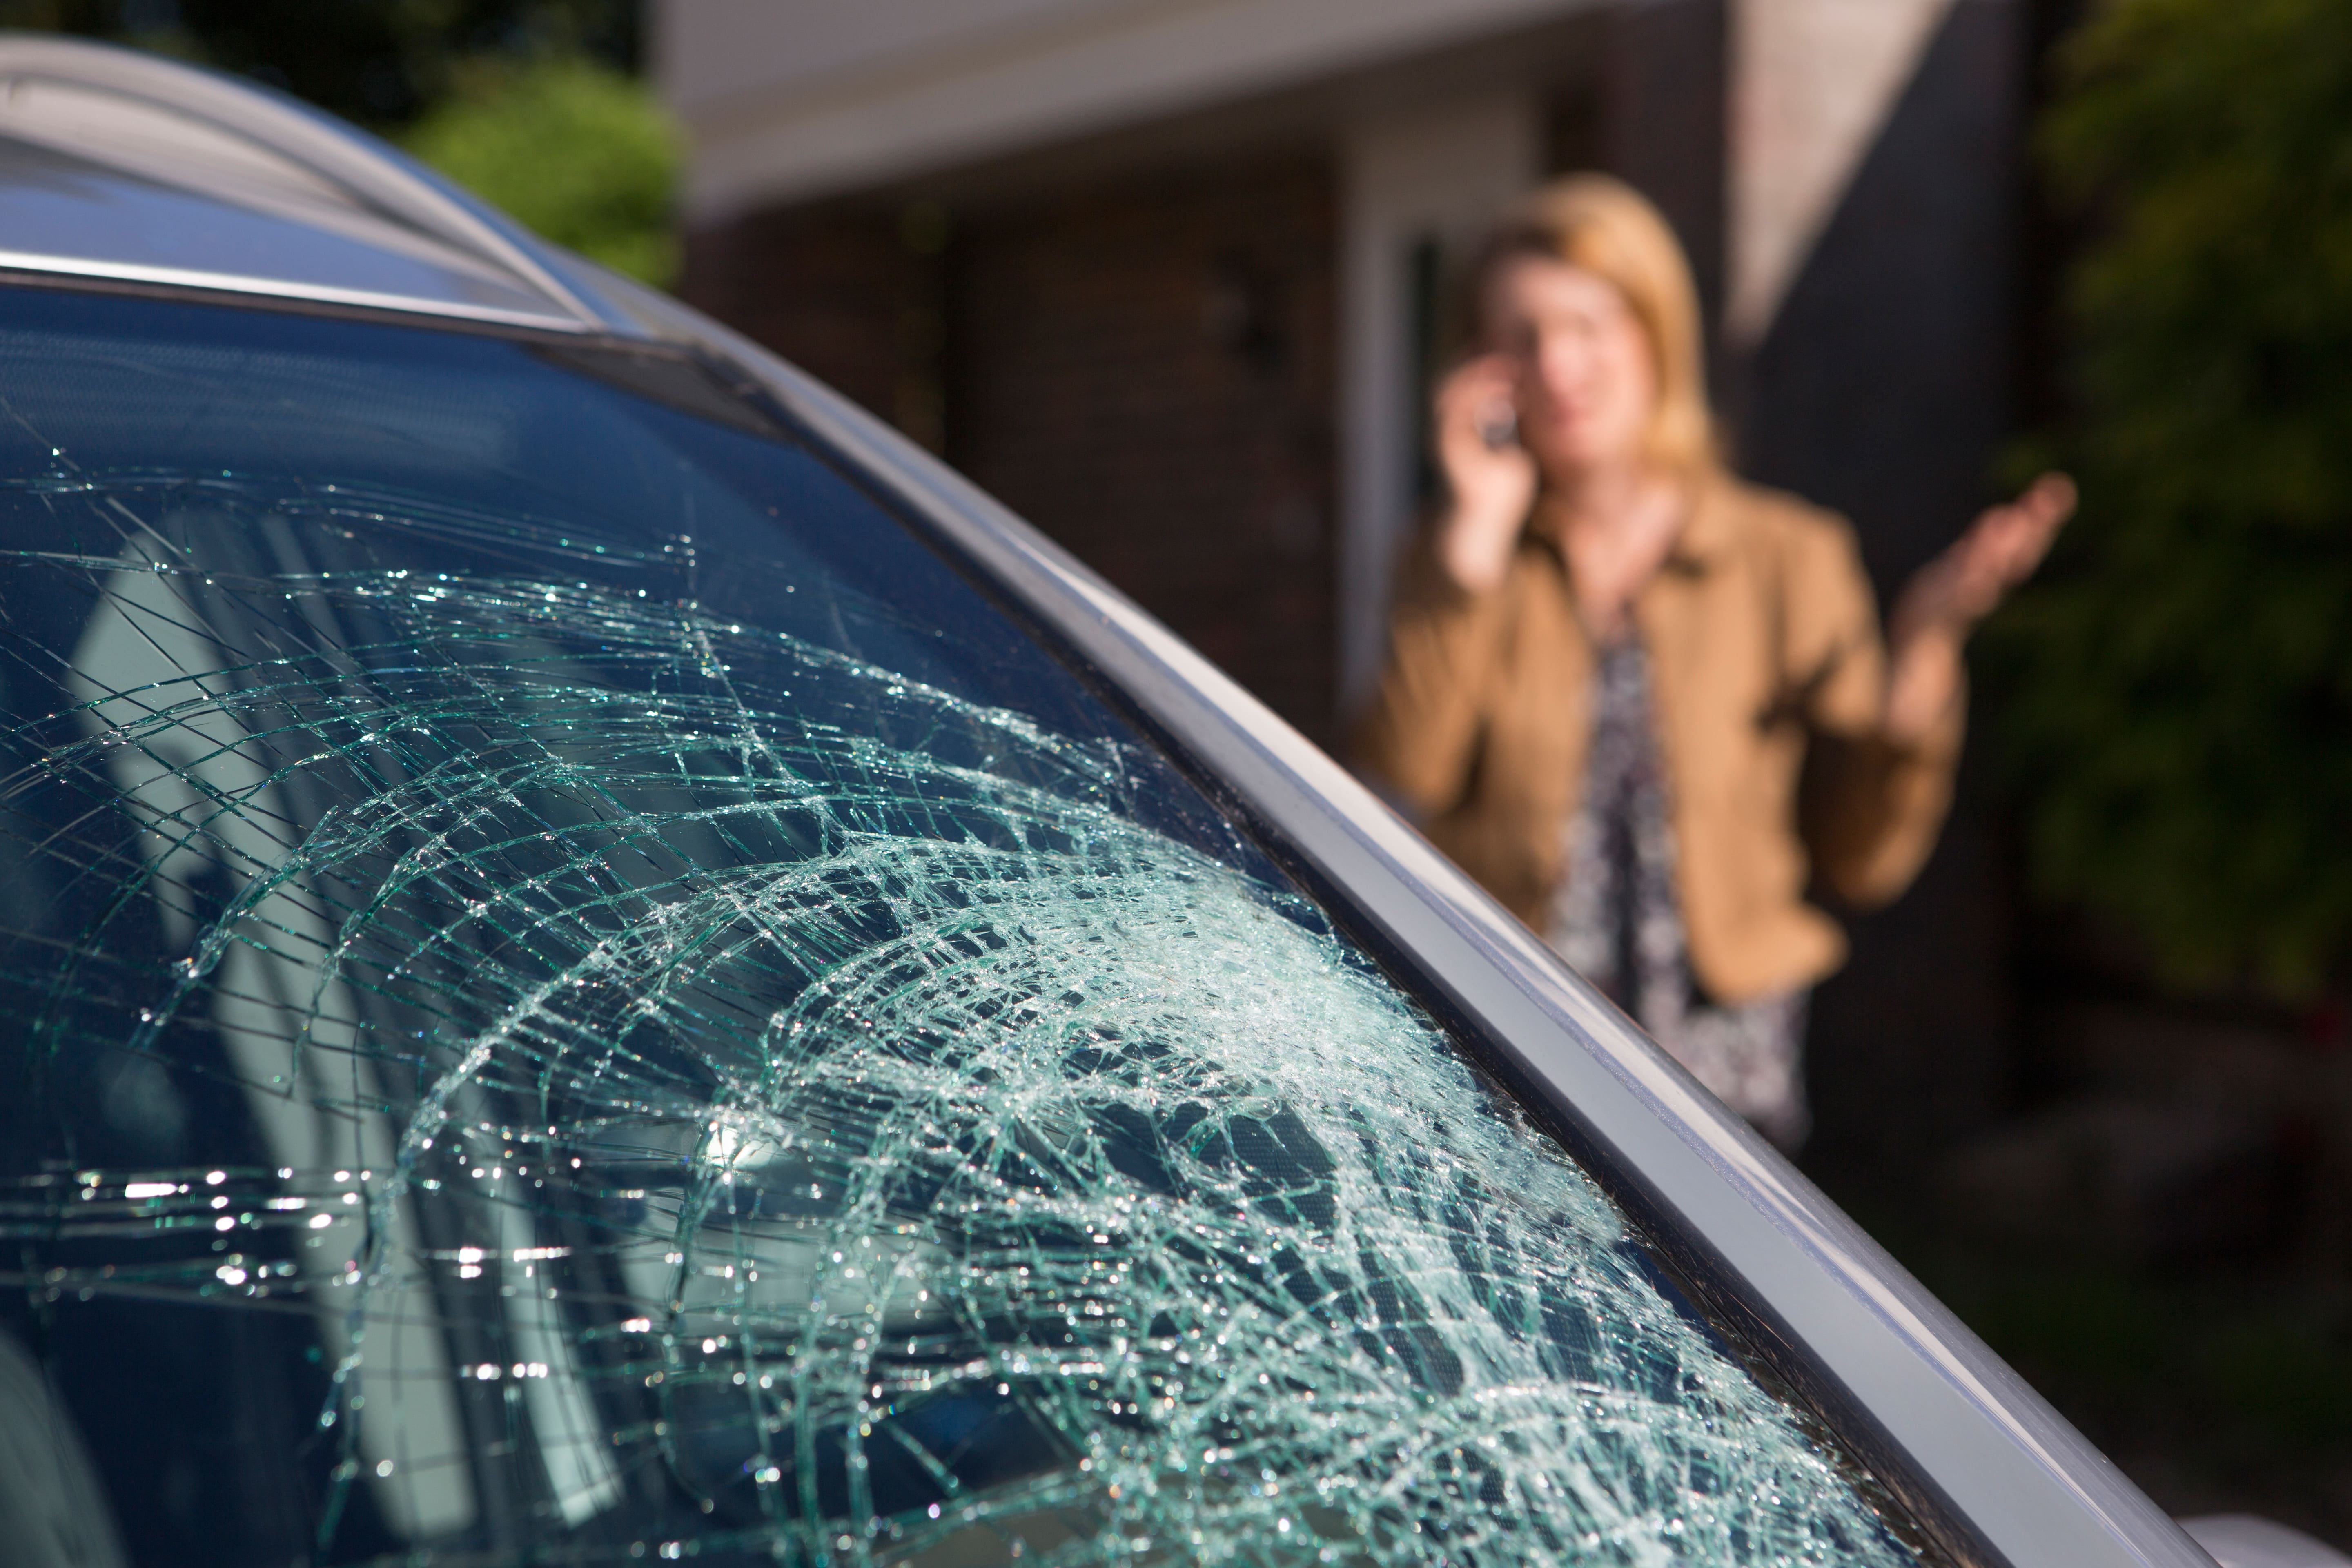 woman-phoning-help-after-car-windshield